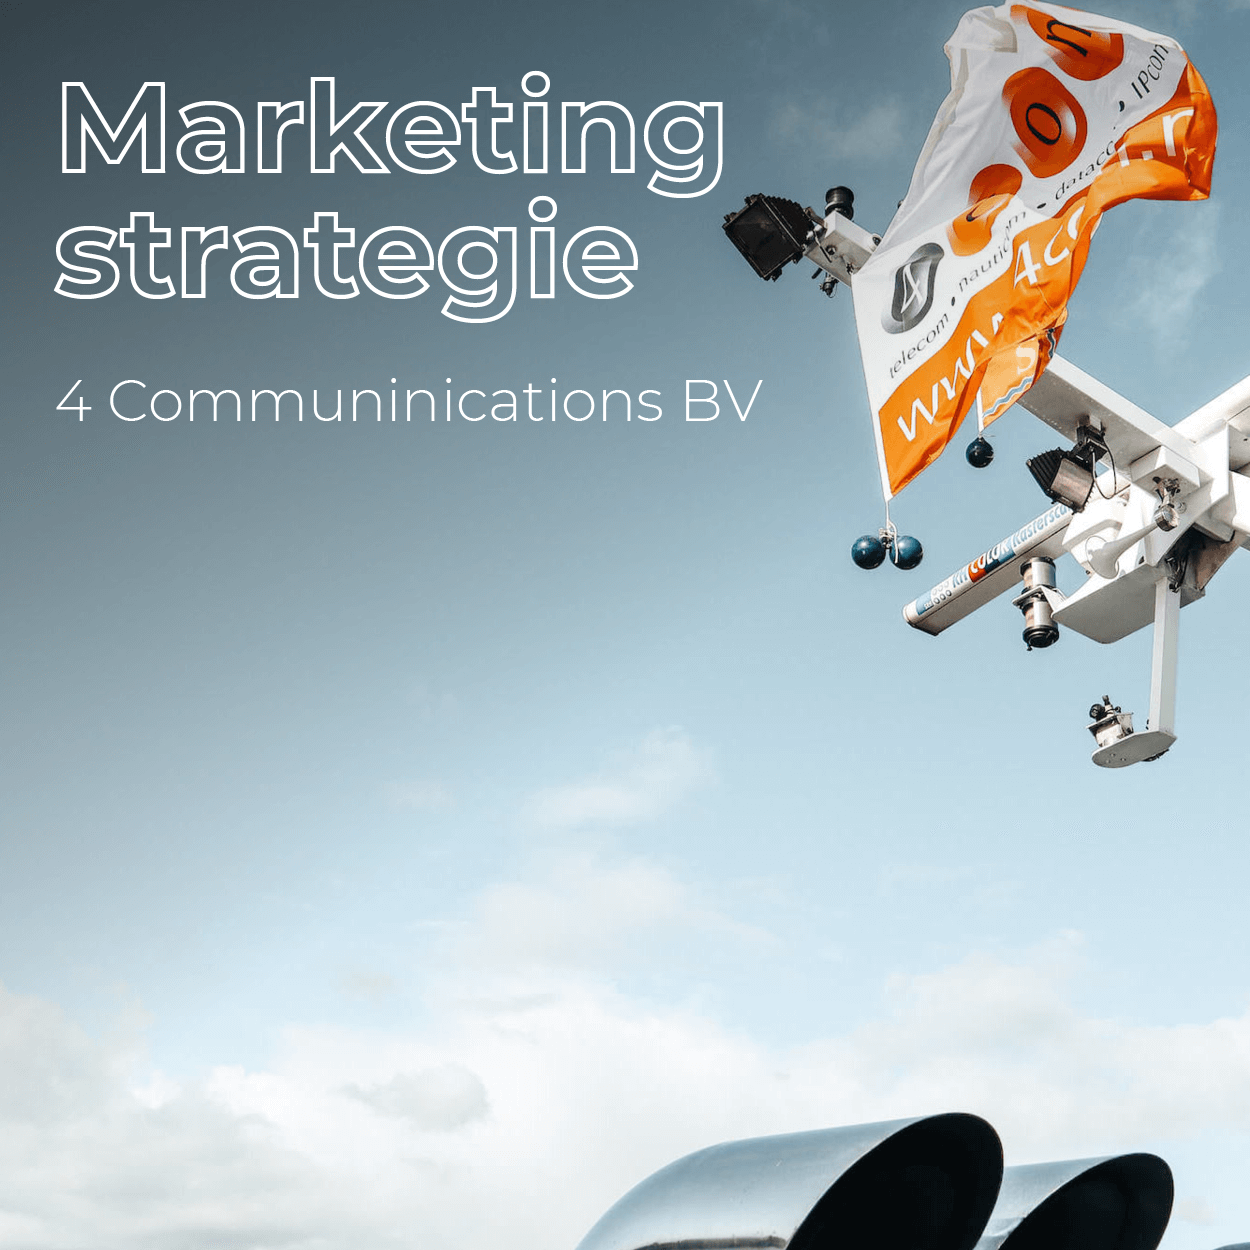 Marketing strategie 4COM